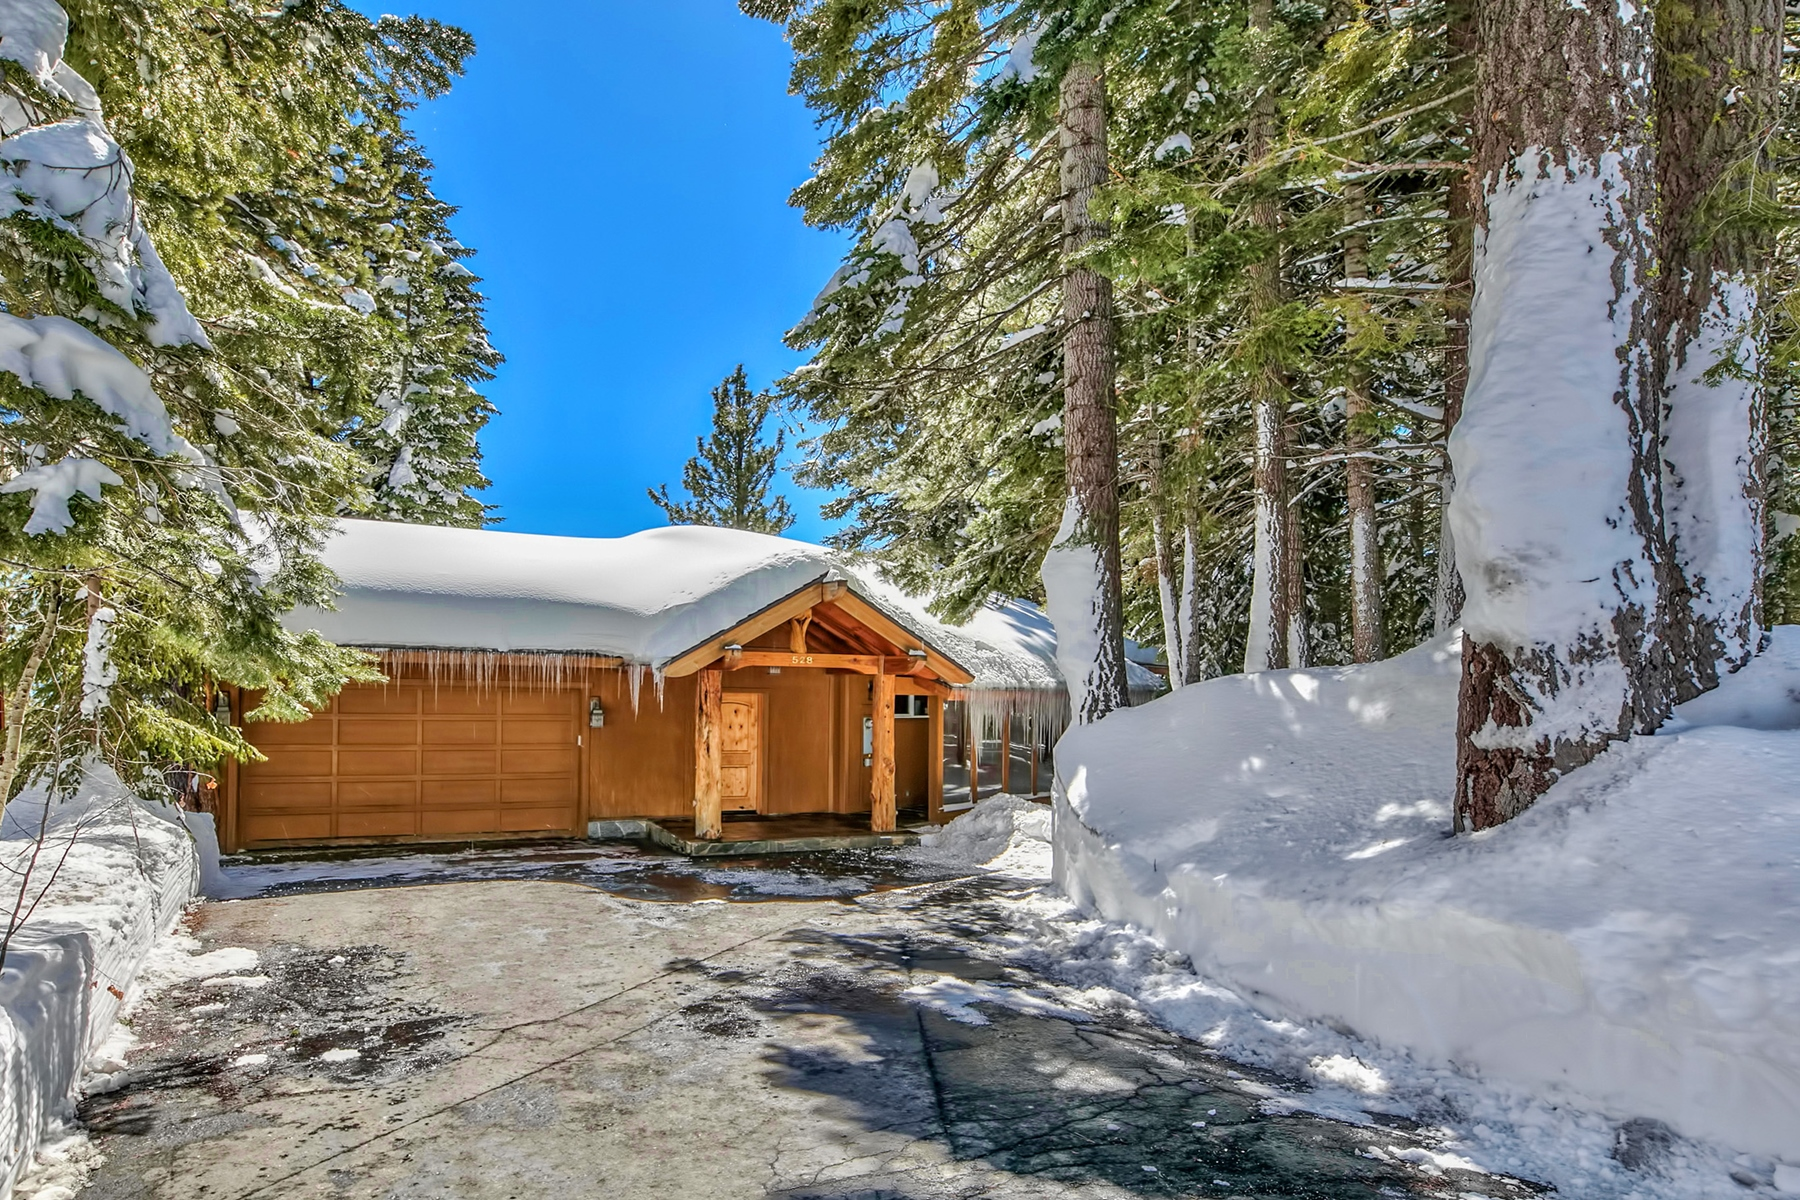 Additional photo for property listing at 528 Joseph Court, Tahoe City, CA 528 Joseph Court Tahoe City, California 96145 United States